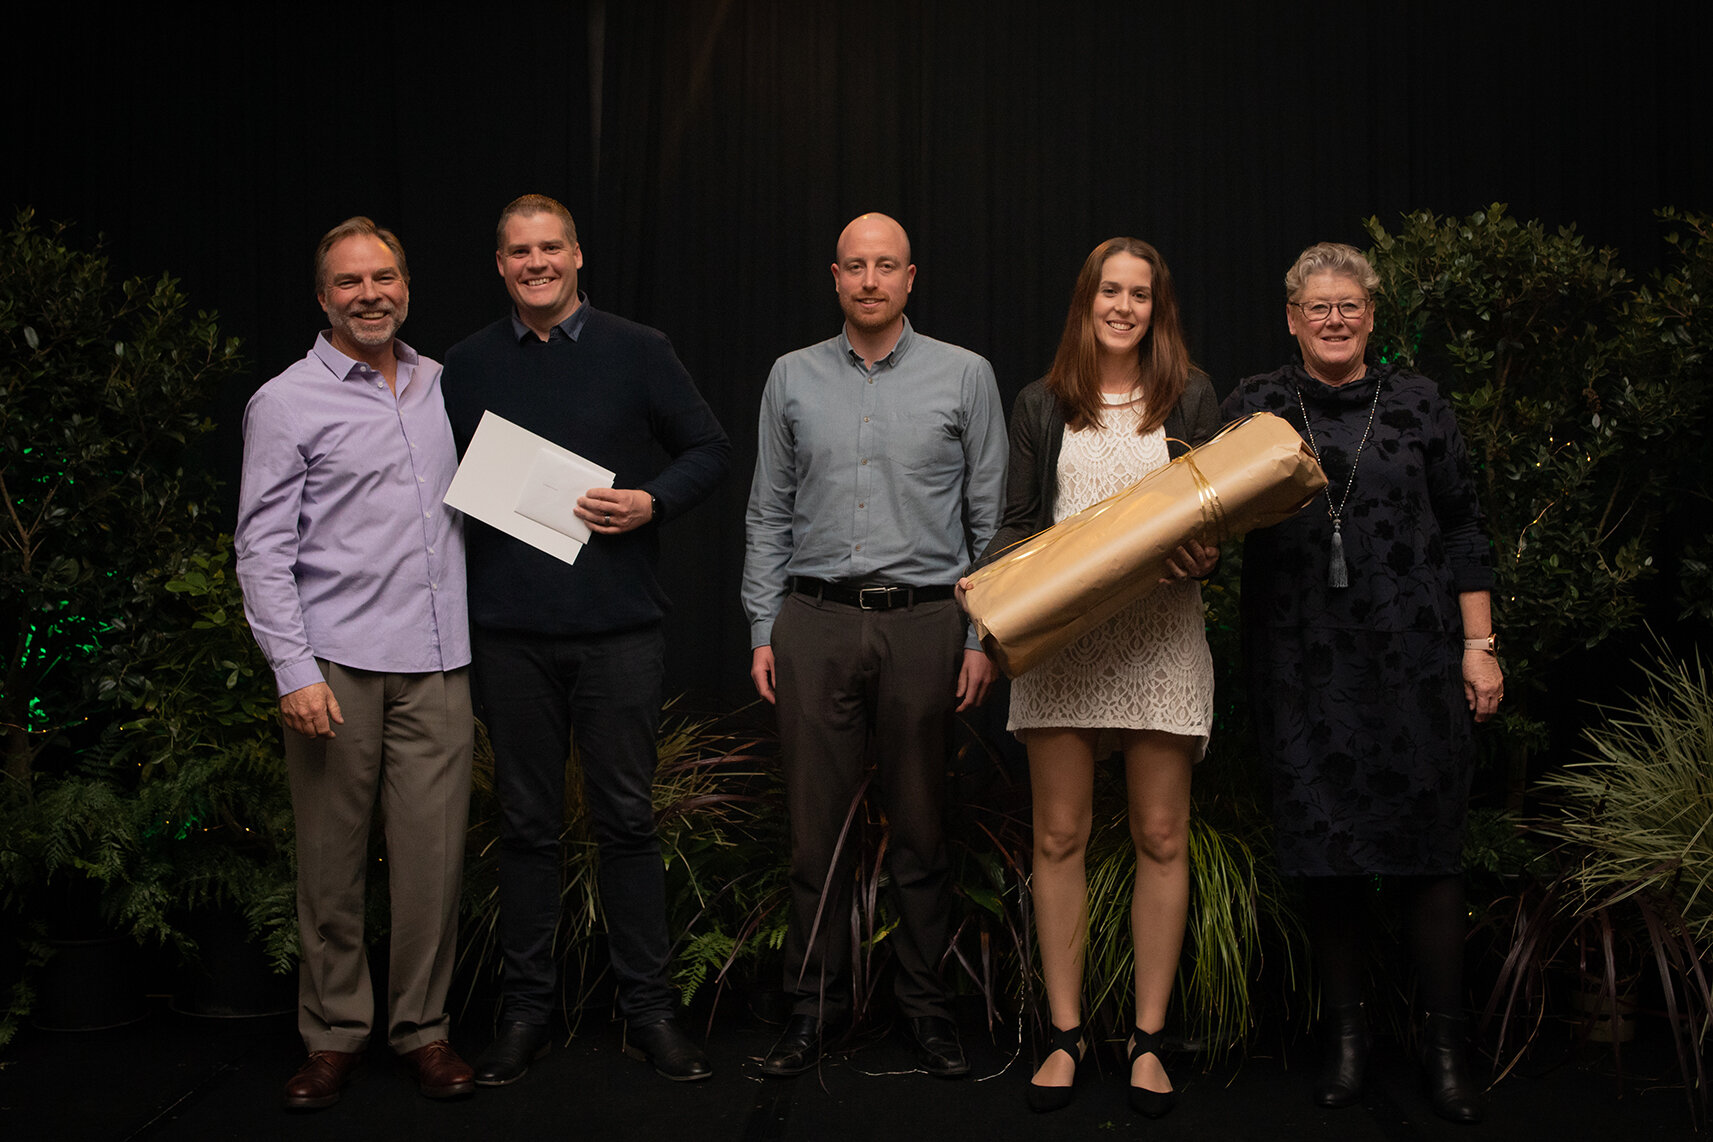 Pukekohe Cart for Outstanding Customer Service - From left to right - Director Jol Glover, Cart Owner Jono Ziesler, Goodman Feilder Rep Luke Donaldson, Cart Owner Sarah Ziesler and Director Donna Ferrall.